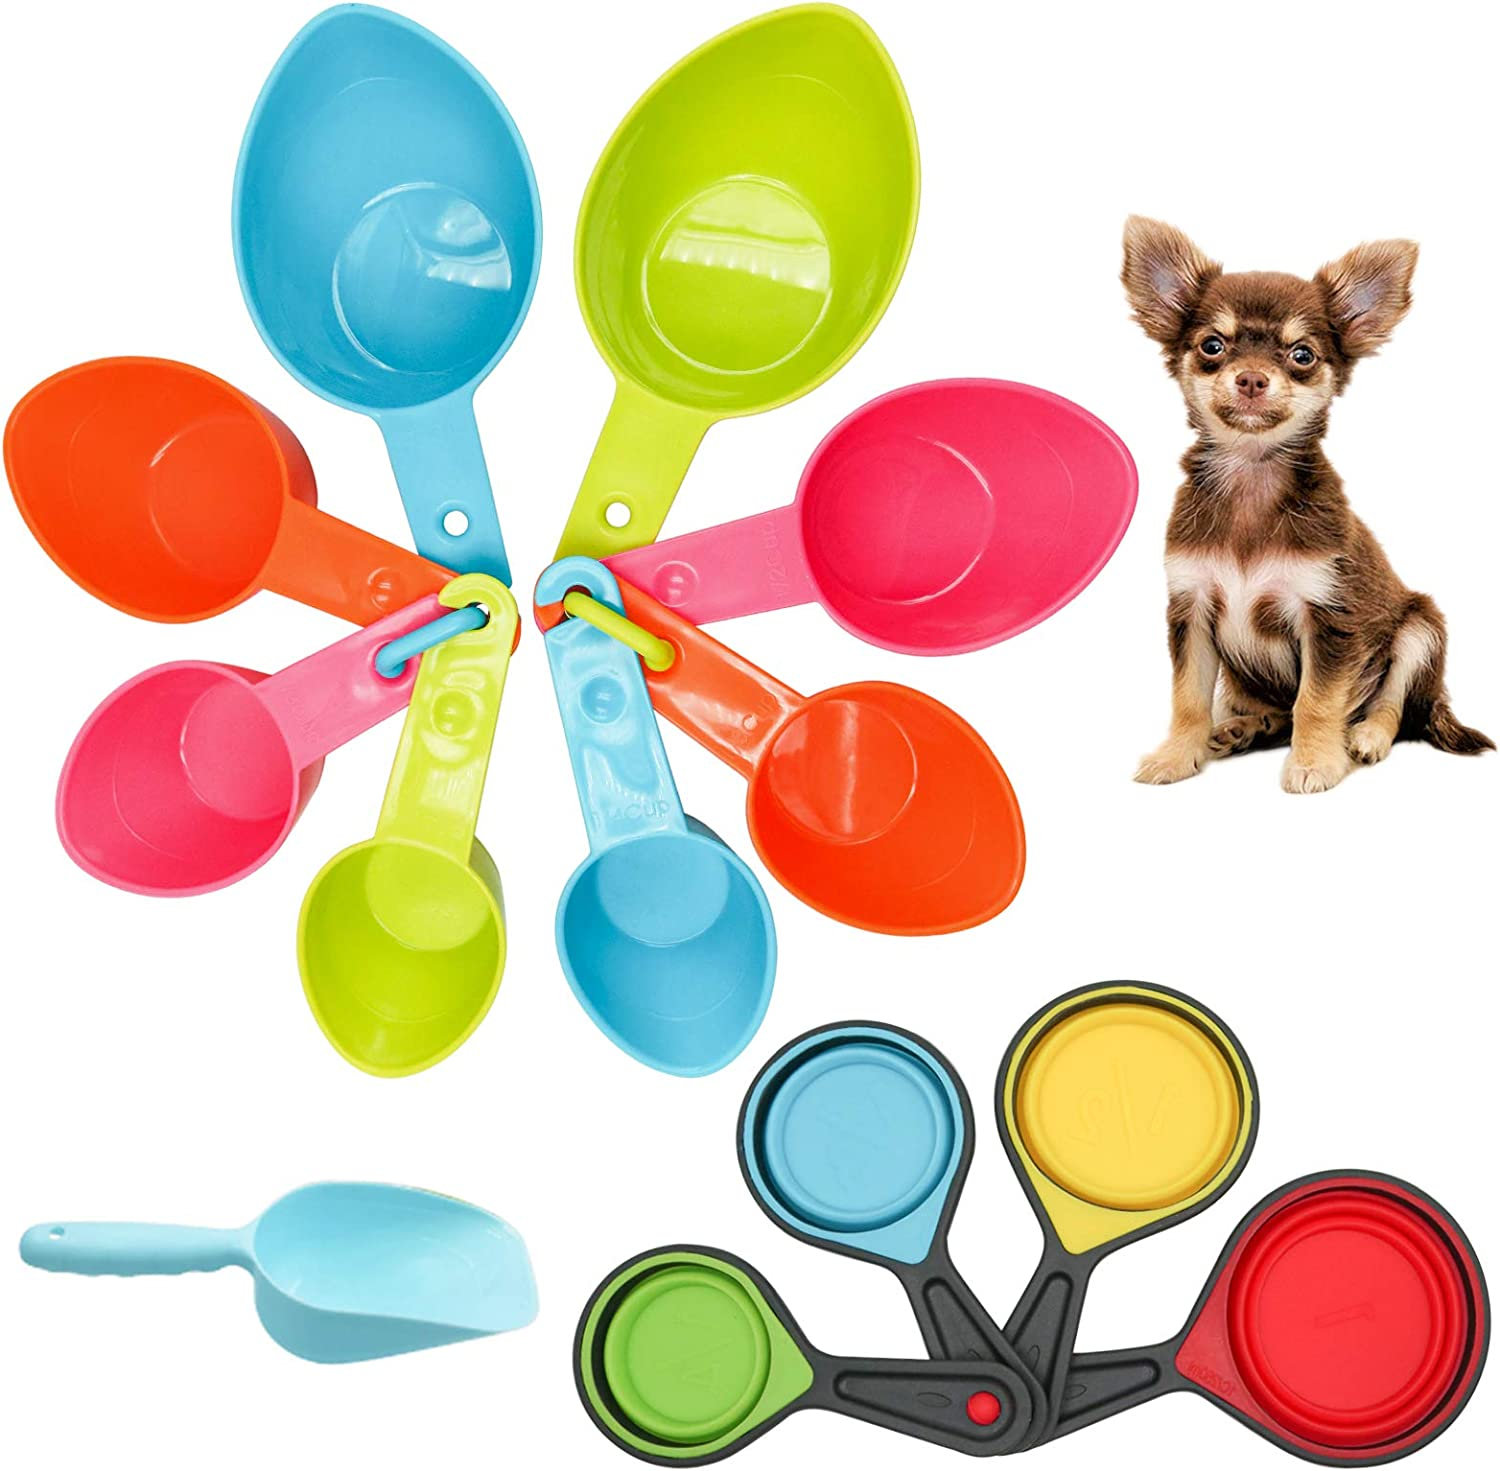 Roundler Pet Food Scoop Set, 4 Sizes Plastic Measuring Cups & 4 Sizes Collapsible Silicone Pet Measuring Scoops for Dog Cat Bird Guinea Pig Ferret and Other Small Animals Dry Food Water